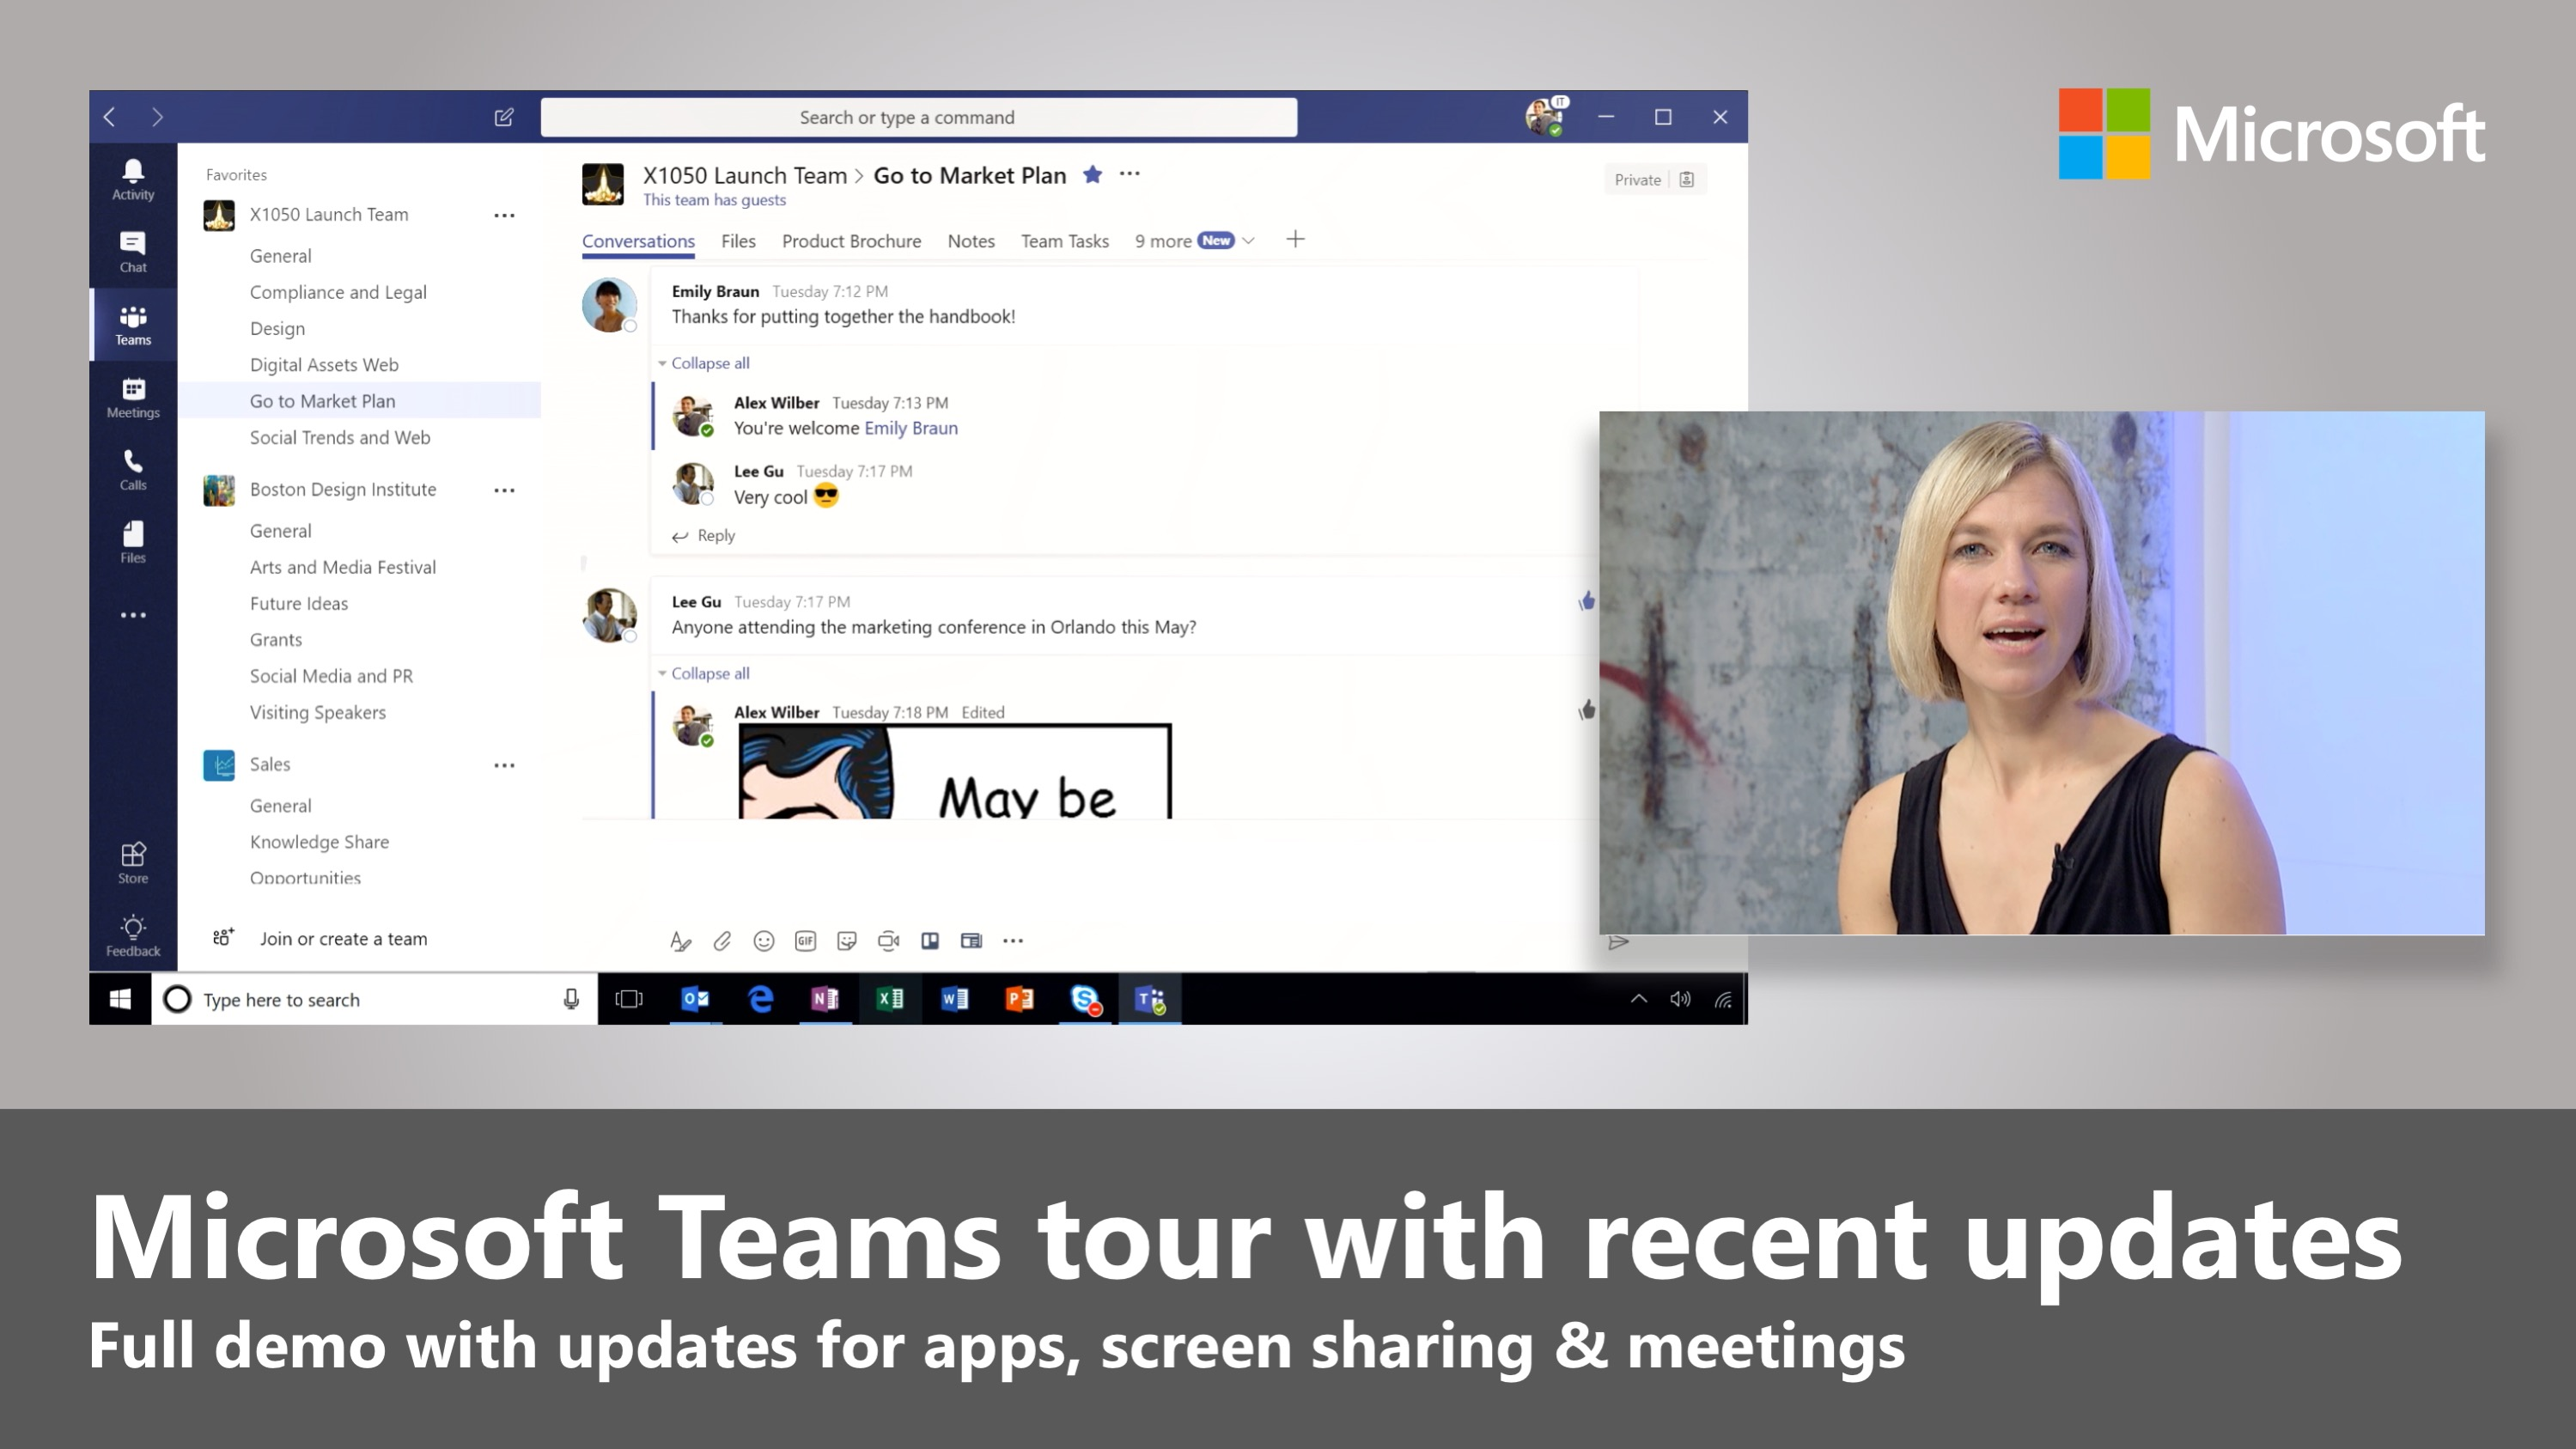 Artwork for Microsoft Teams and recent updates to add Skype for Business capabilities